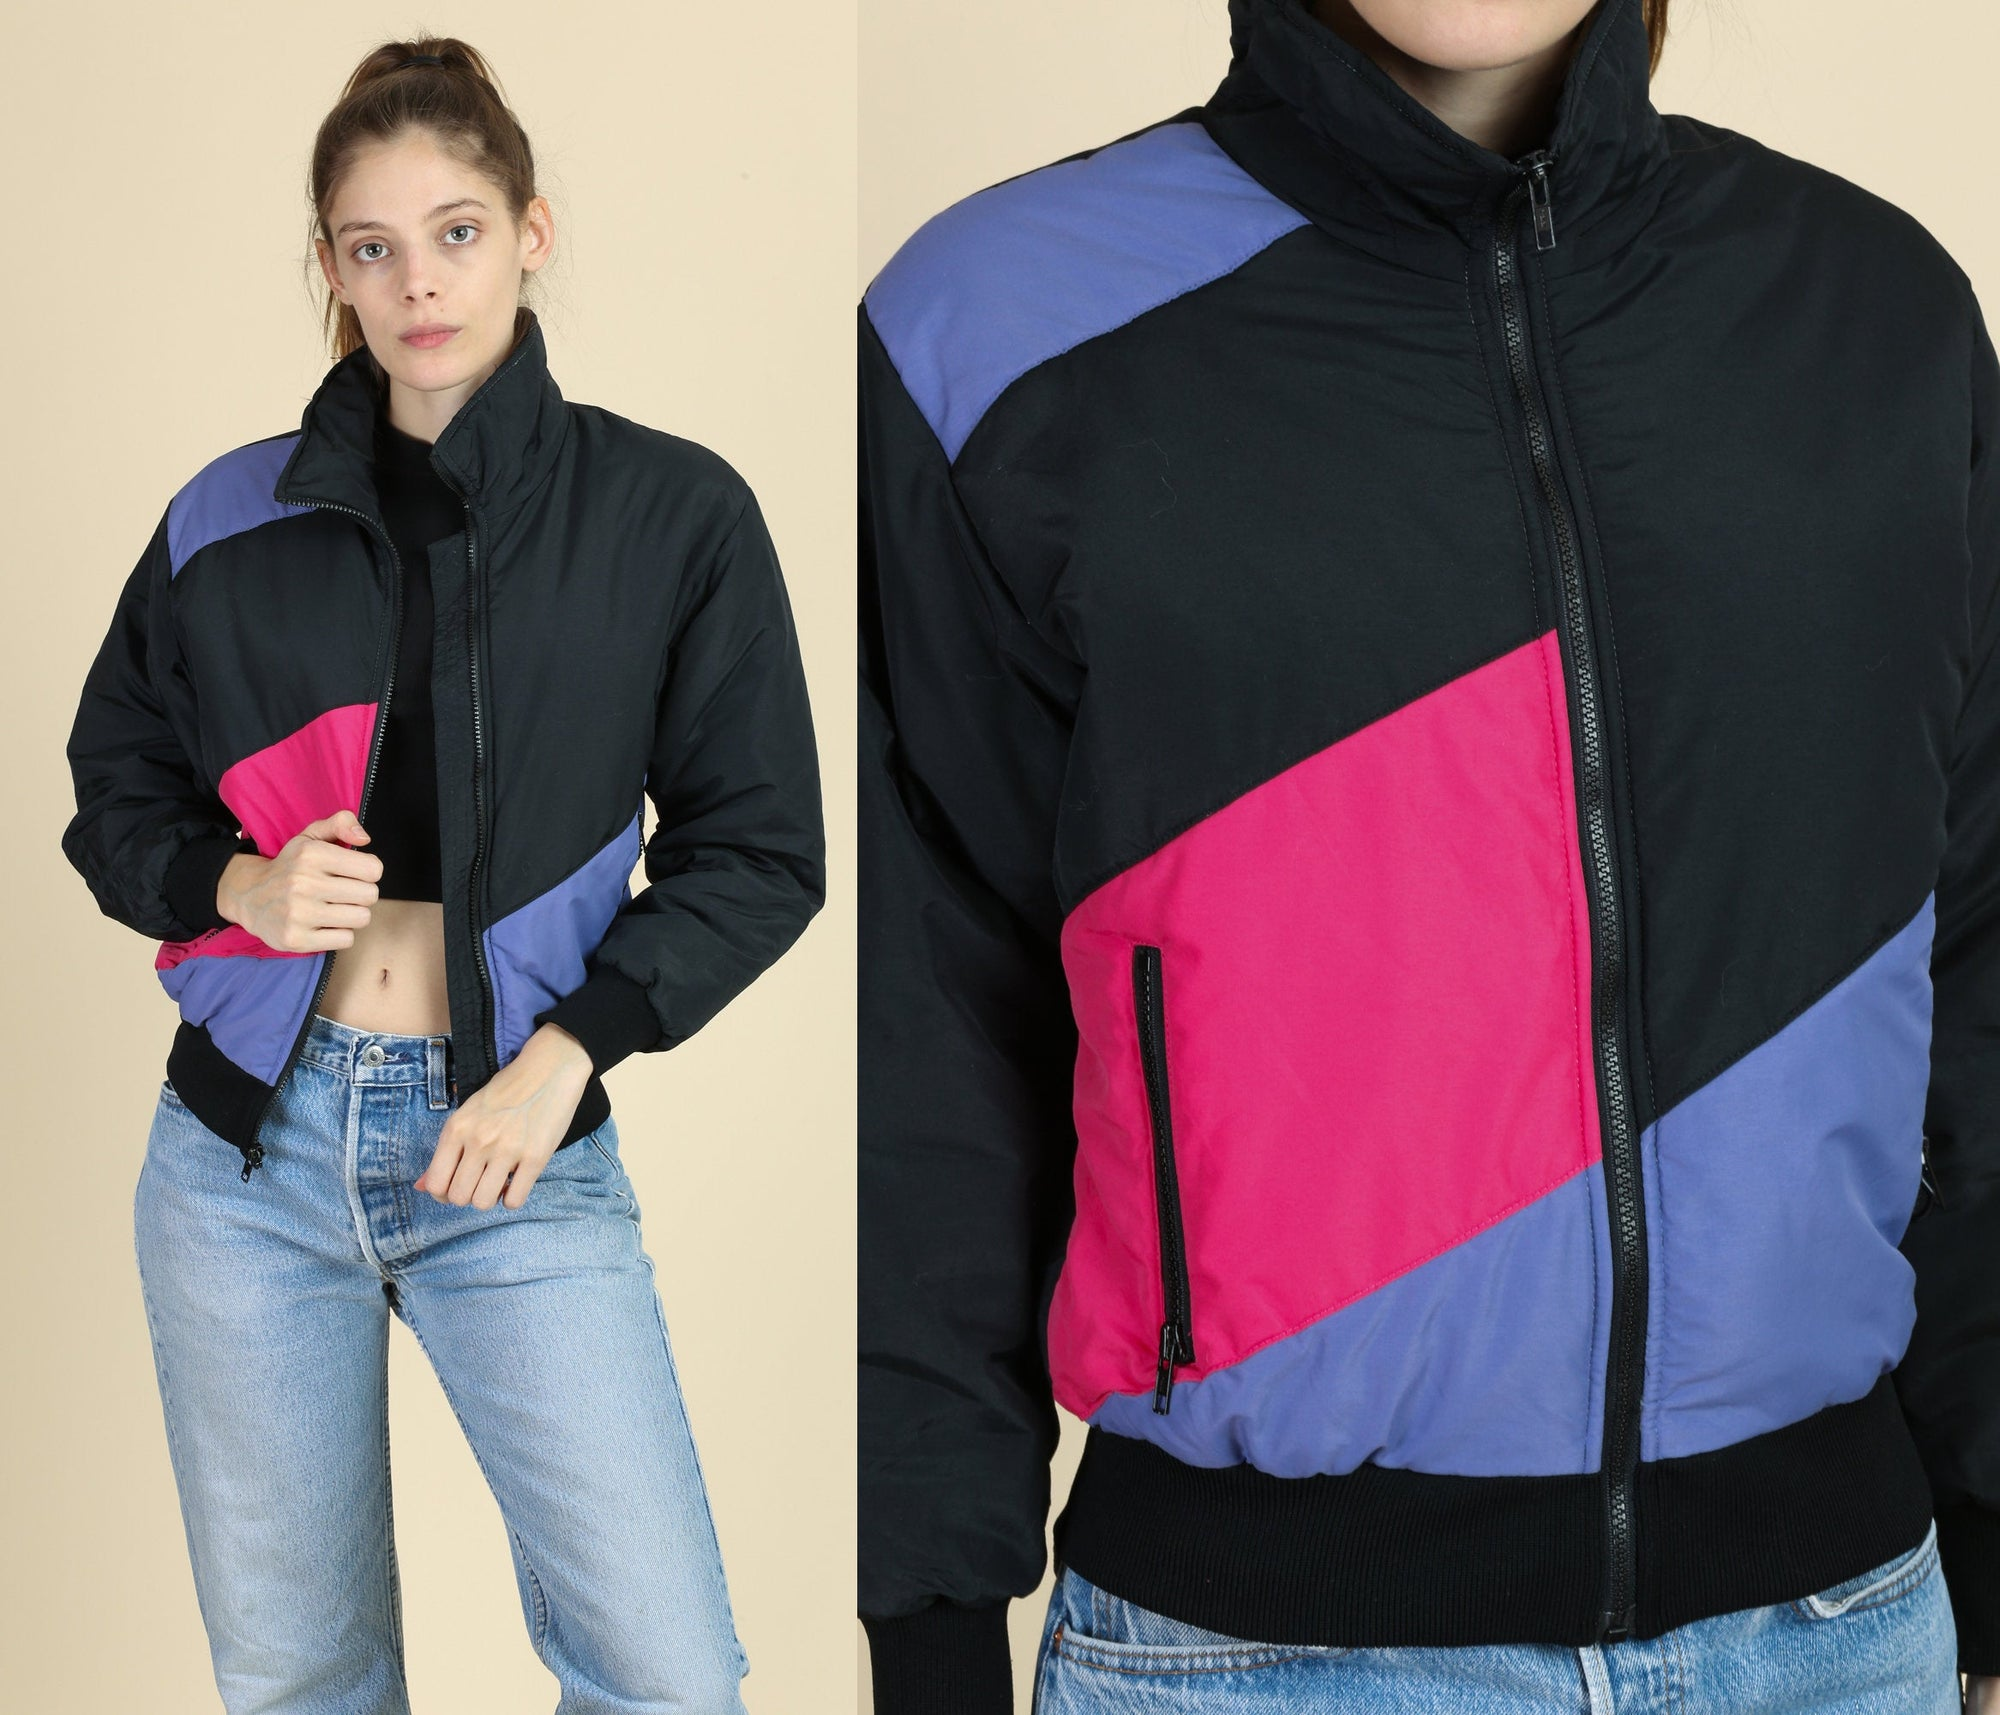 80s Color Block Puffer Jacket - Medium